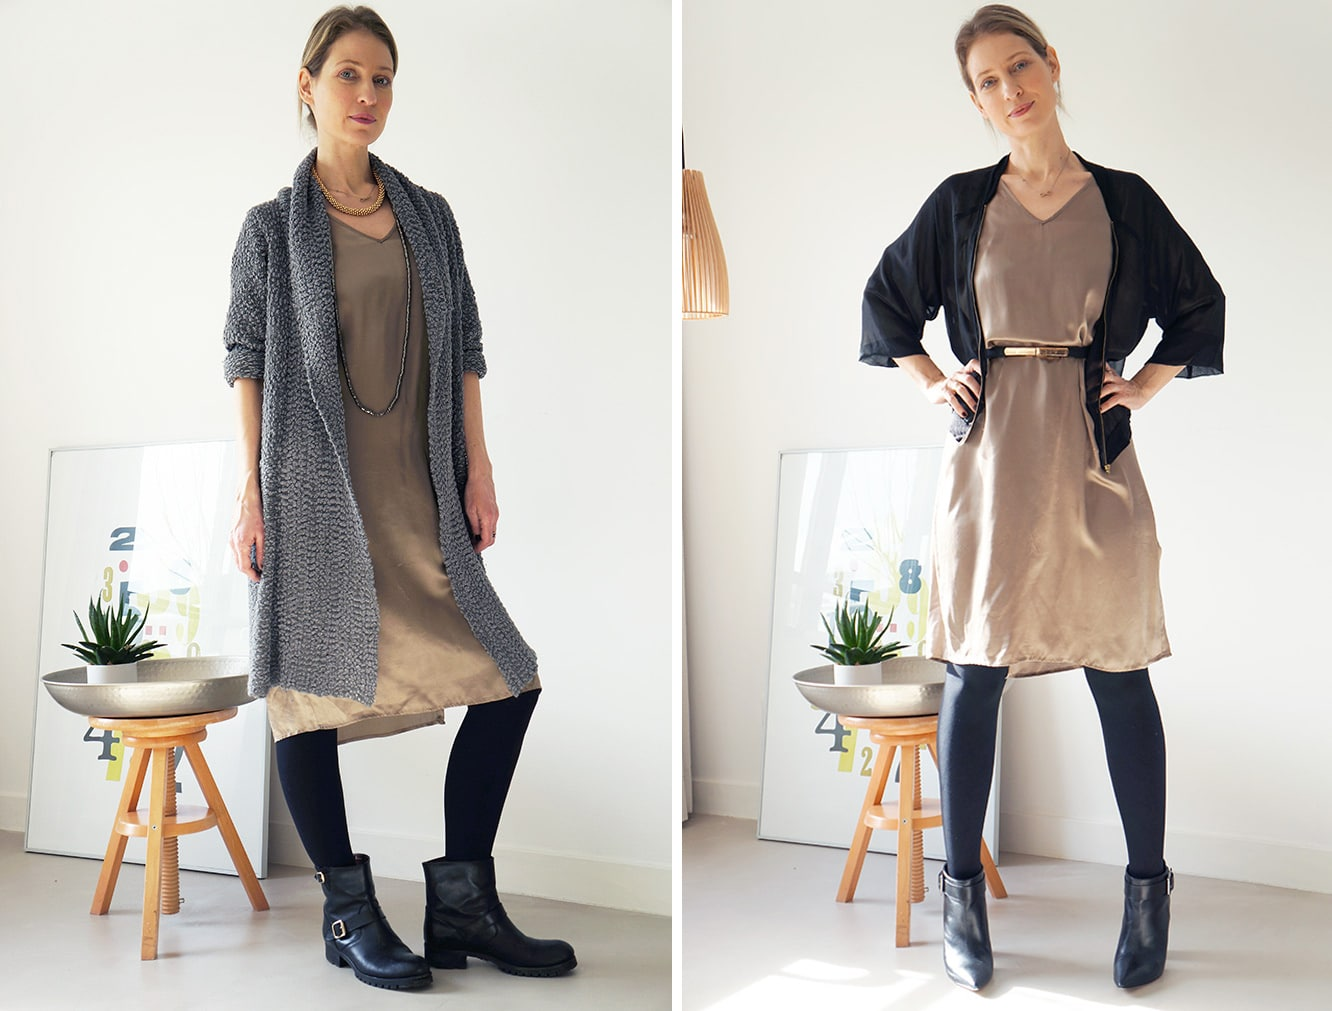 personal stylist Anna is showing Victoria Onken how to style the same dress for day and night